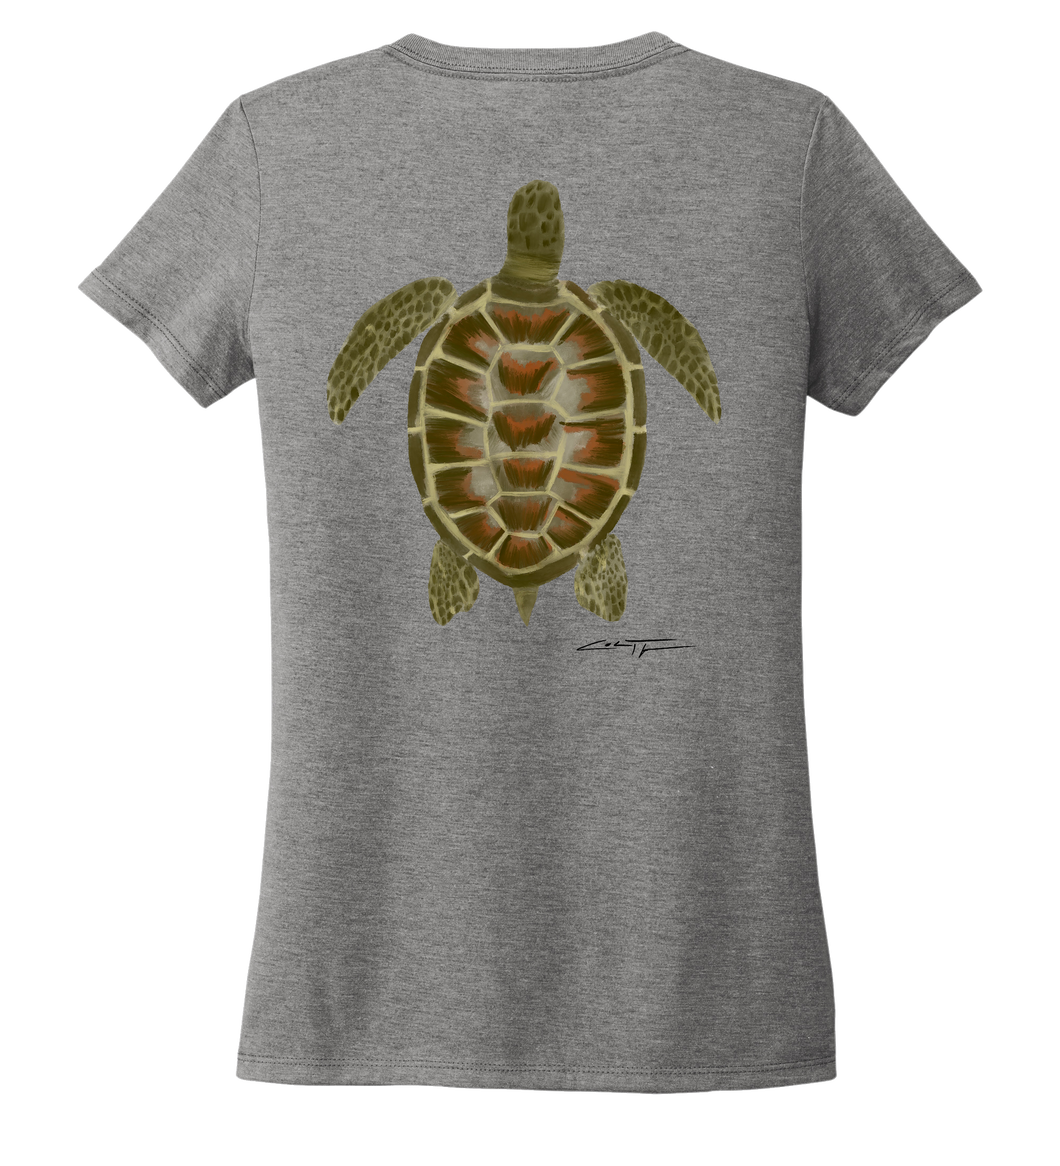 Colin Thompson, Turtle, Women's V-neck T-shirt in Oyster Grey